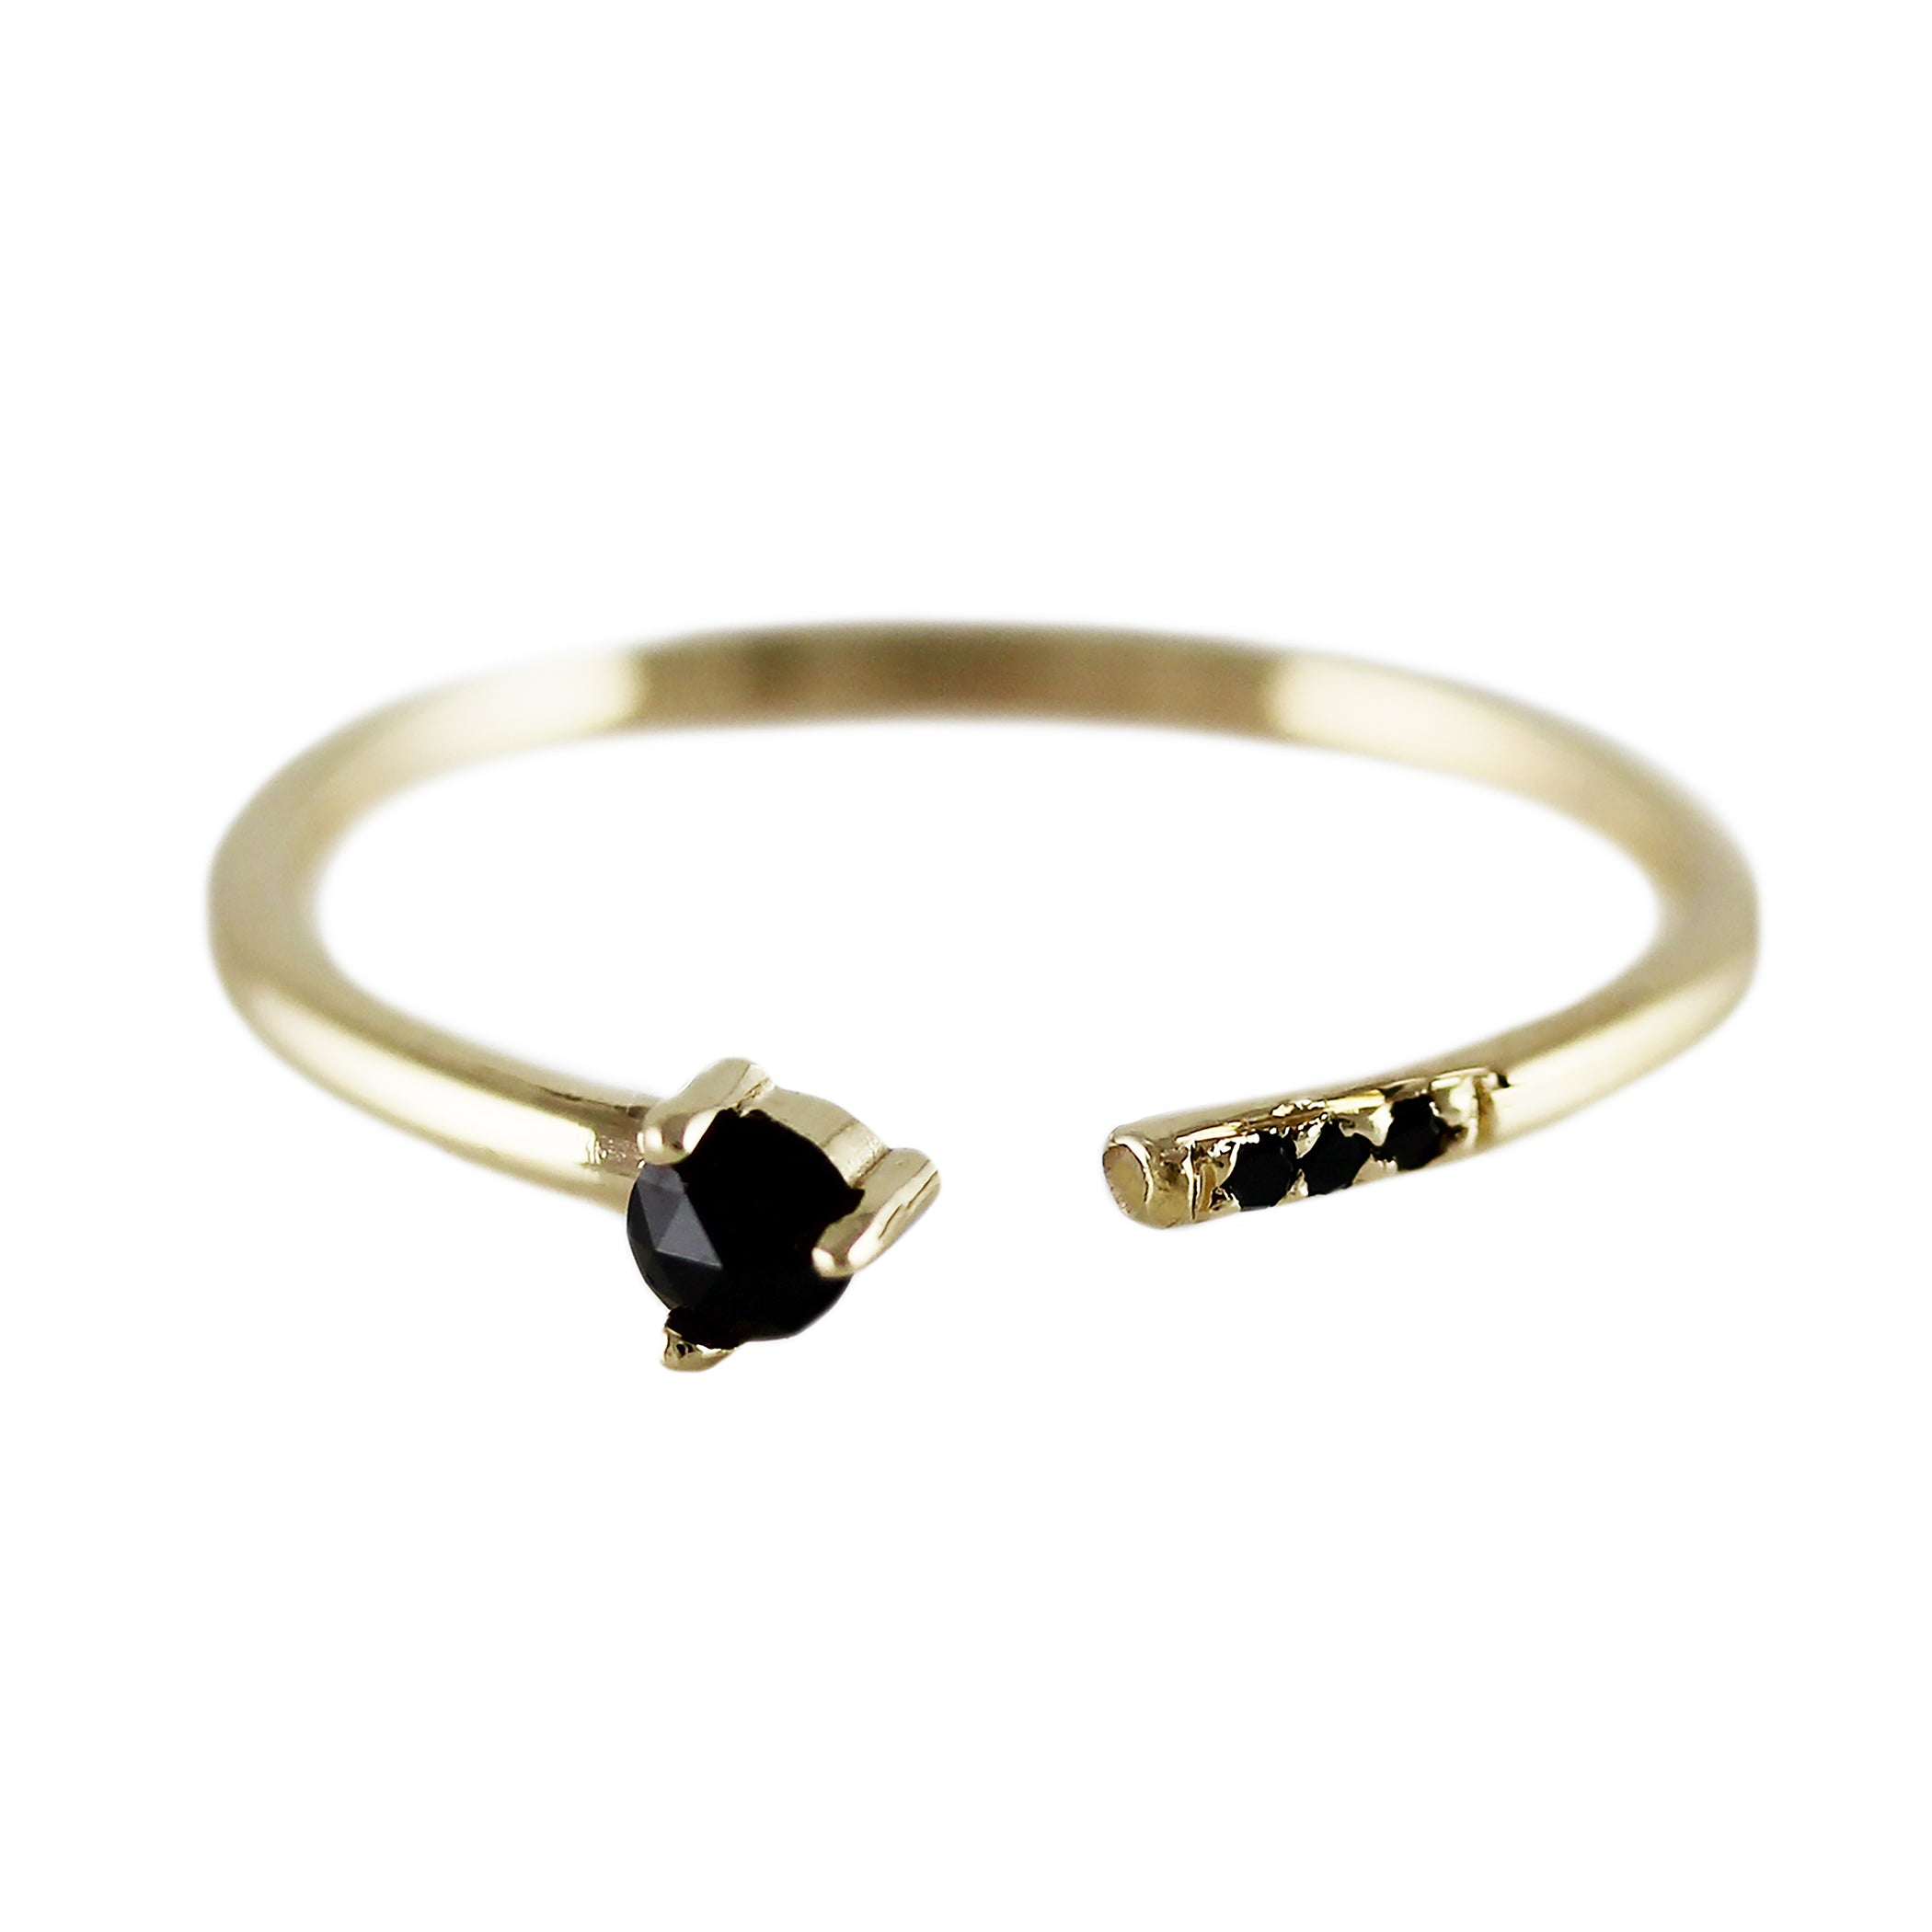 diamond jewelry bracelets shape bangles in with heart bracelet white b gold pave bangle black filigree